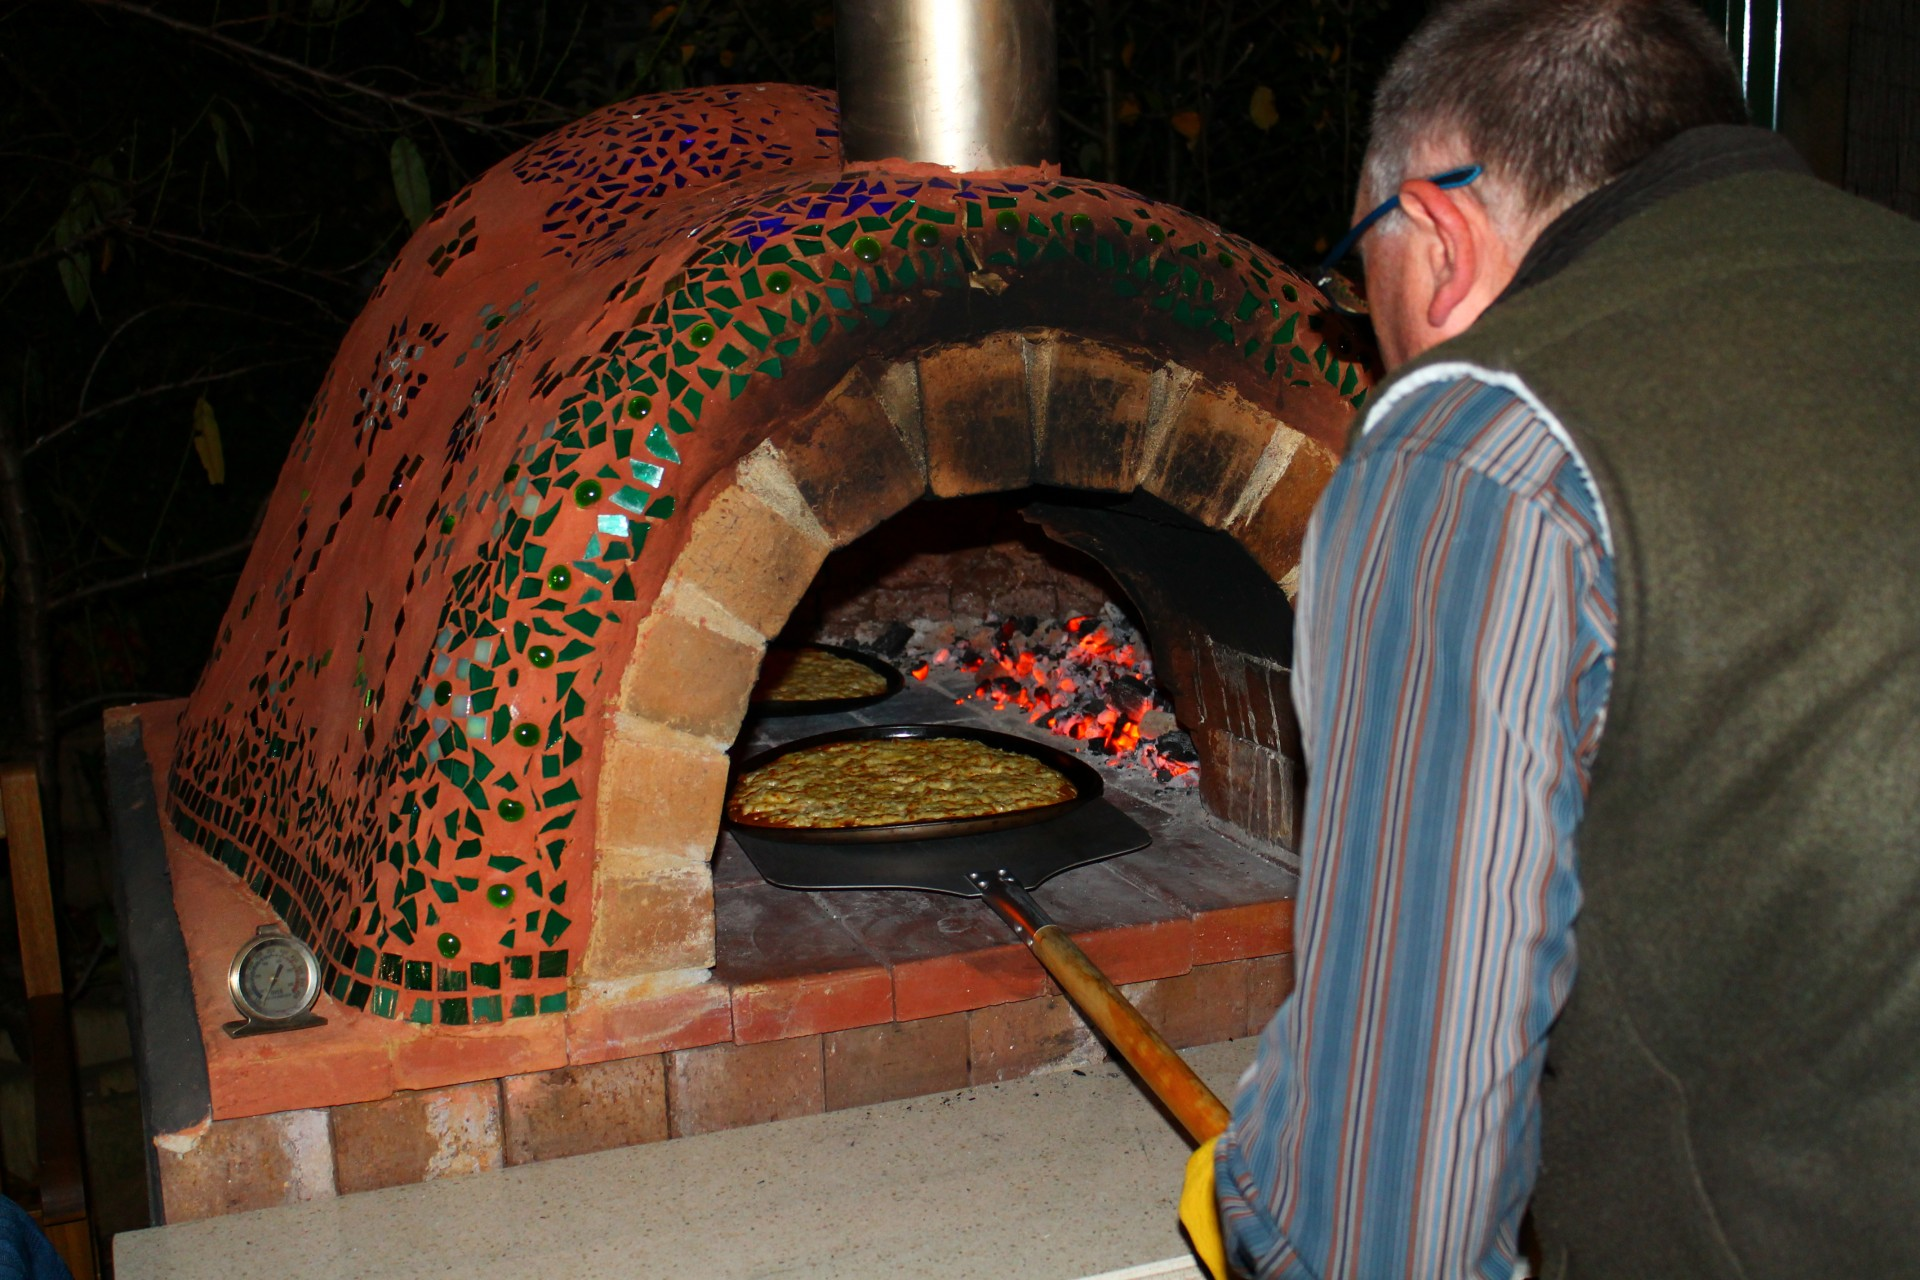 Best Pizza Ovens For Home Use Clay Oven - The Greening of Gavin